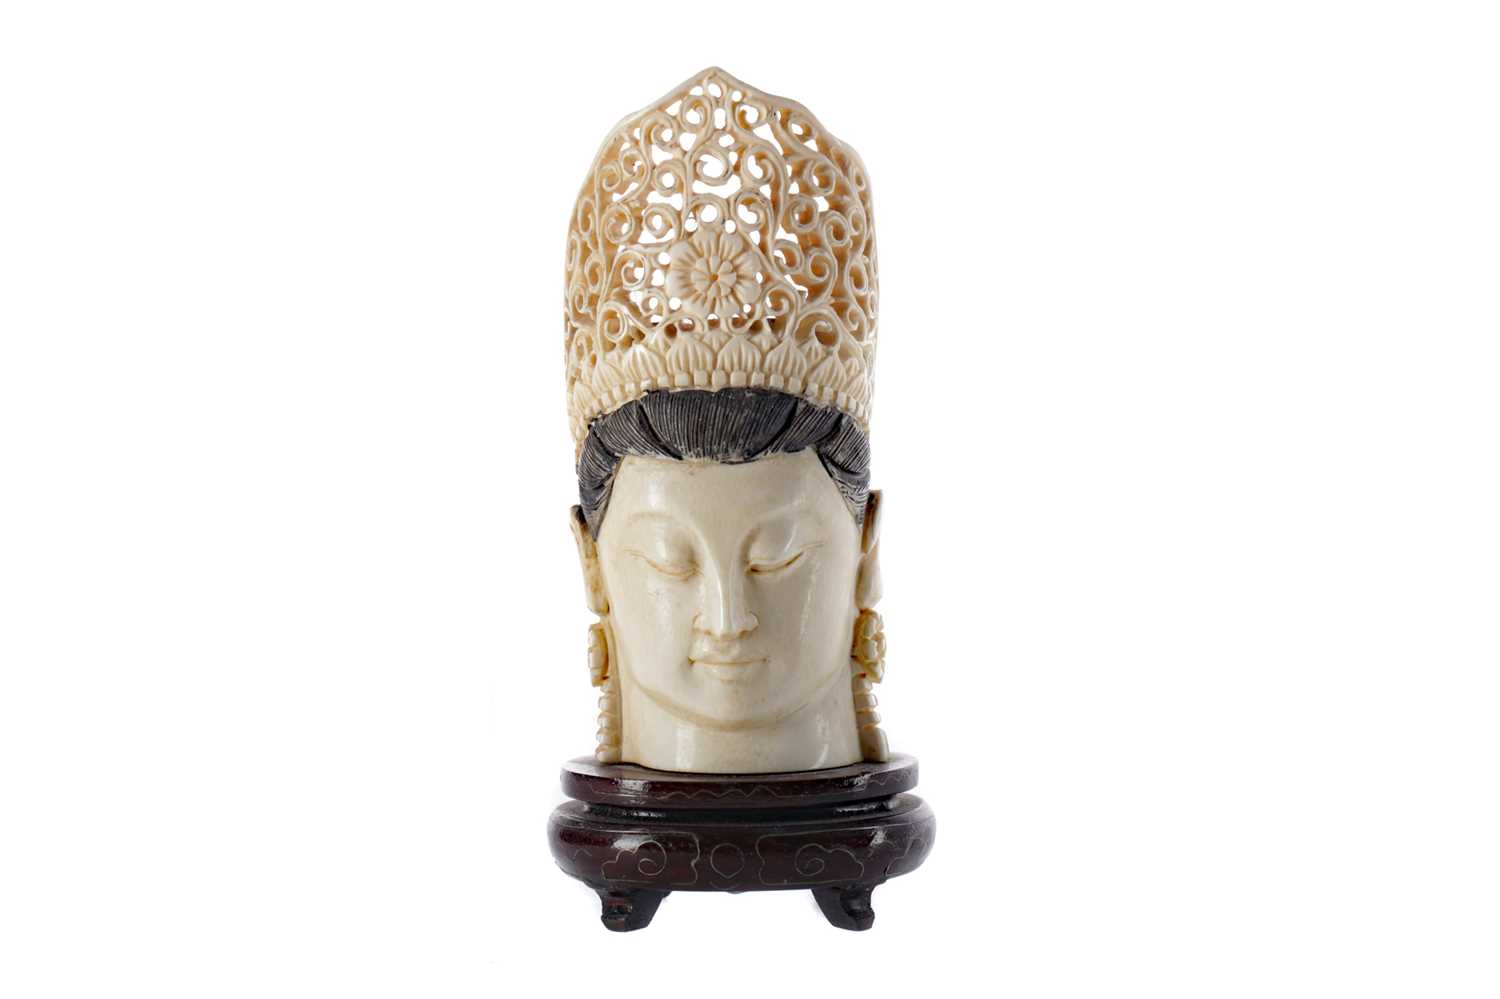 Lot 787 - AN EARLY 20TH CENTURY CHINESE CARVED IVORY HEAD